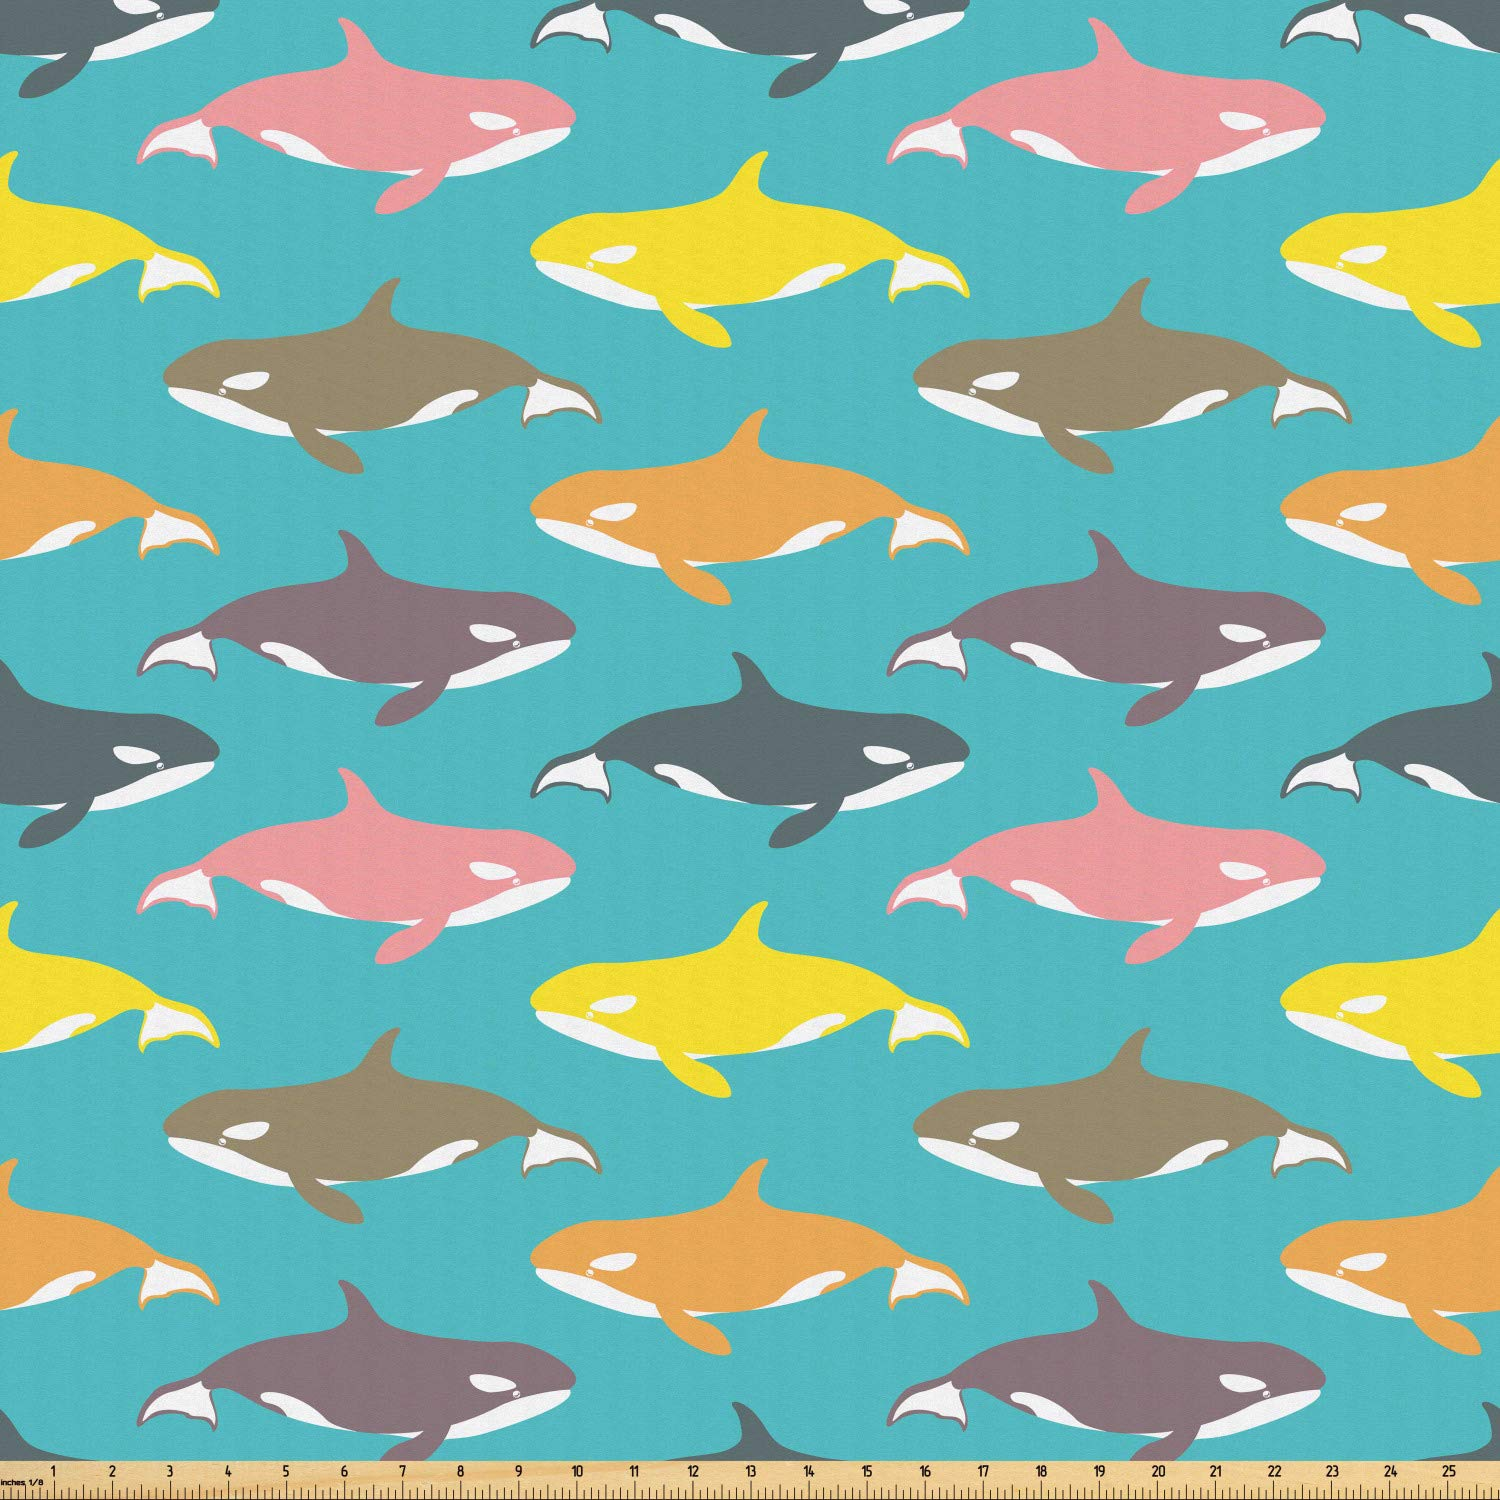 Amazon com: Ambesonne Whale Fabric by The Yard, Colorful